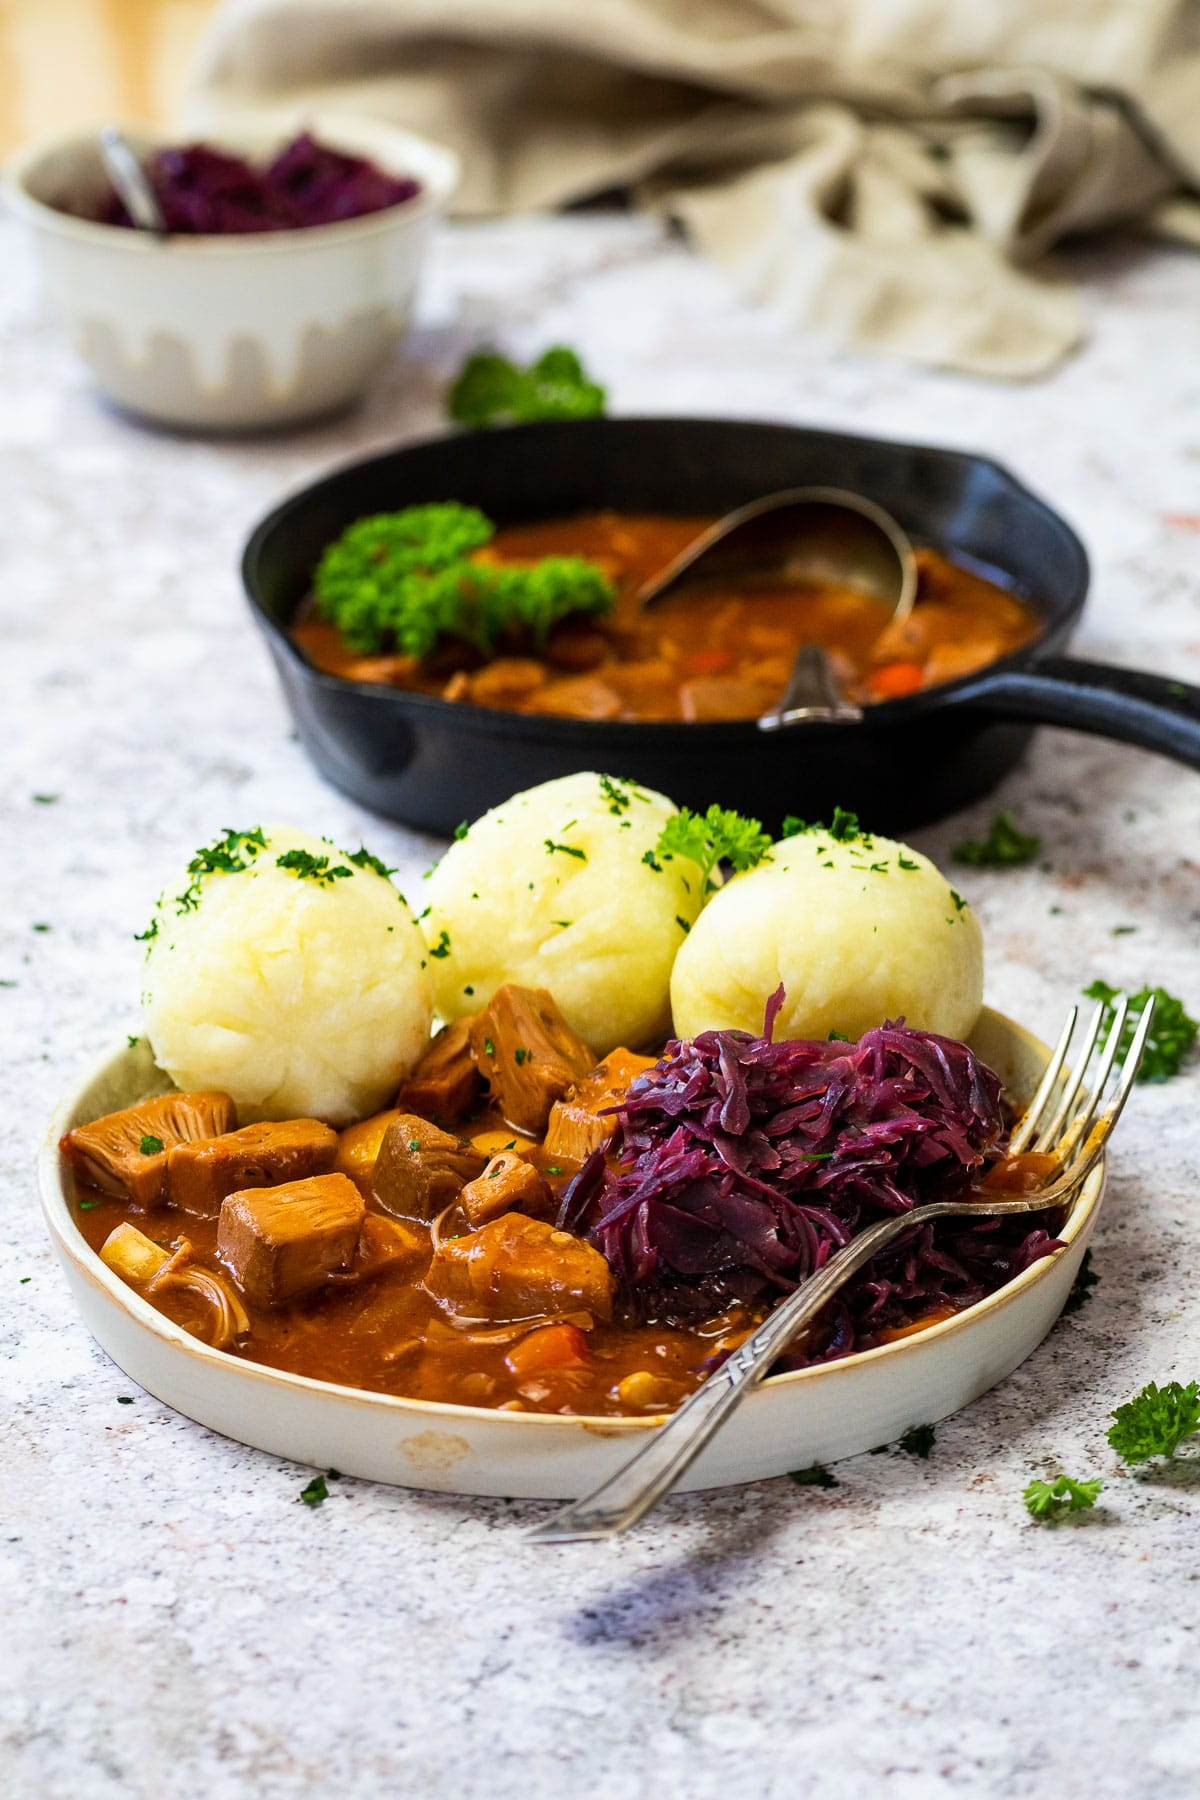 A plat and cast iron pan with plant based hungarian goulash